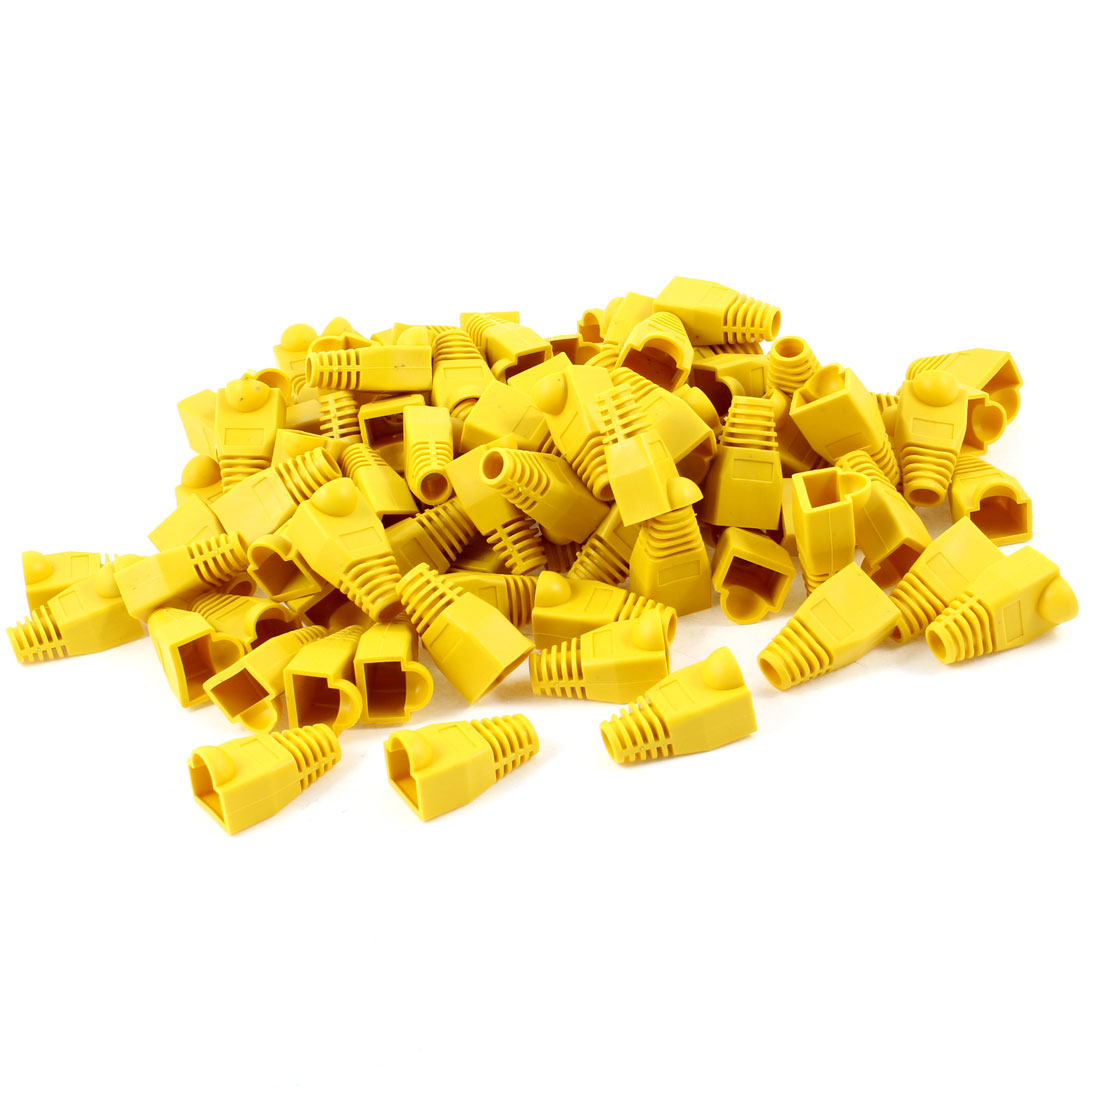 100 Pcs Yellow Soft Plastic Cover Boots Cap for RJ45 Connector